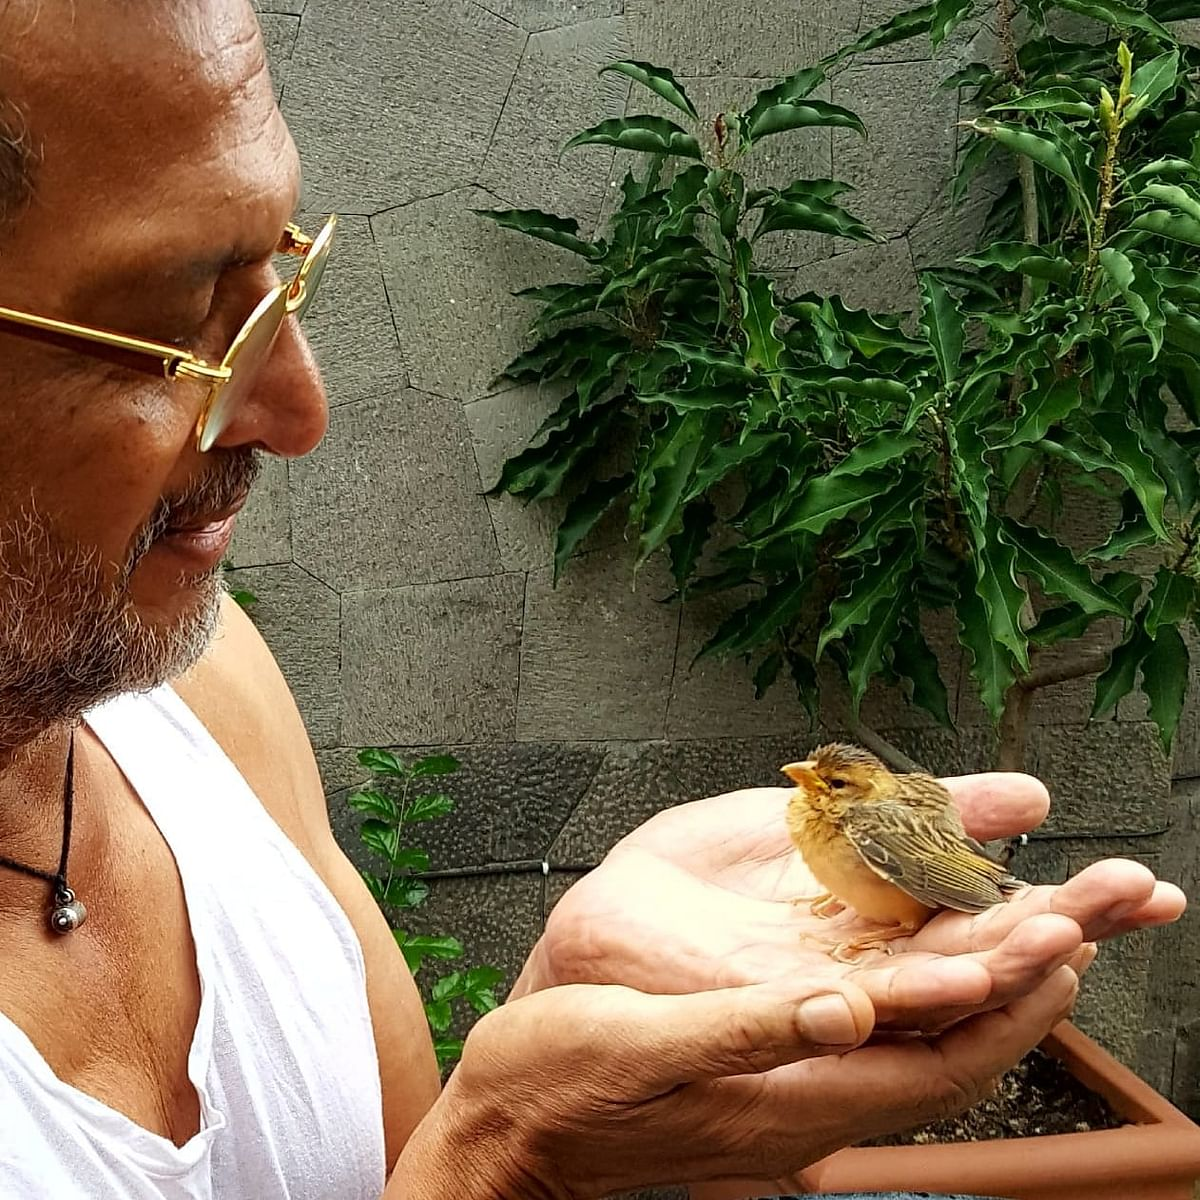 Nana Patekar Shares Cute Picture With Sparrow In Hands